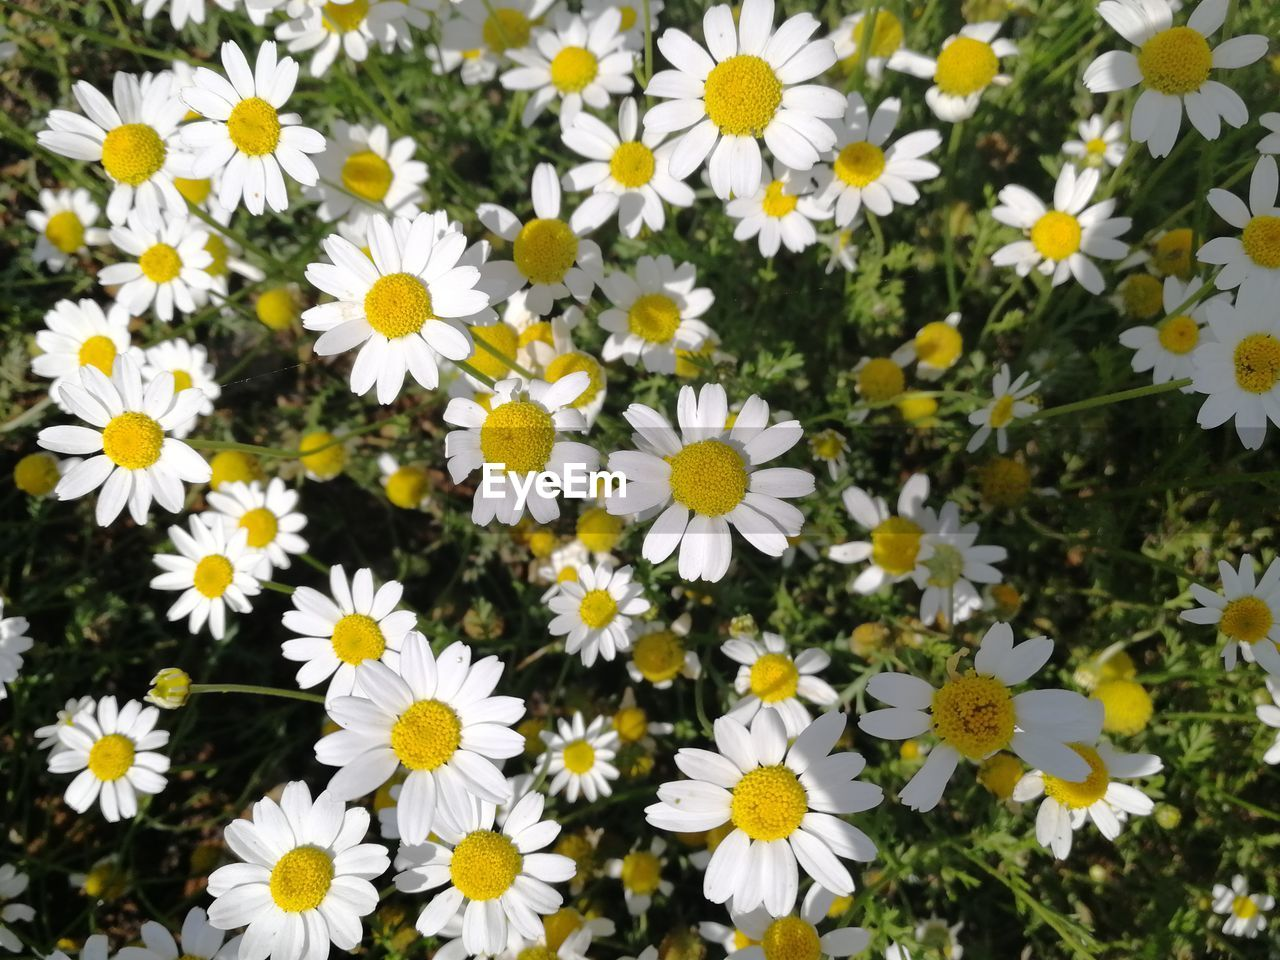 flowering plant, flower, freshness, petal, fragility, vulnerability, plant, inflorescence, flower head, beauty in nature, growth, yellow, close-up, daisy, nature, pollen, no people, day, white color, abundance, outdoors, flowerbed